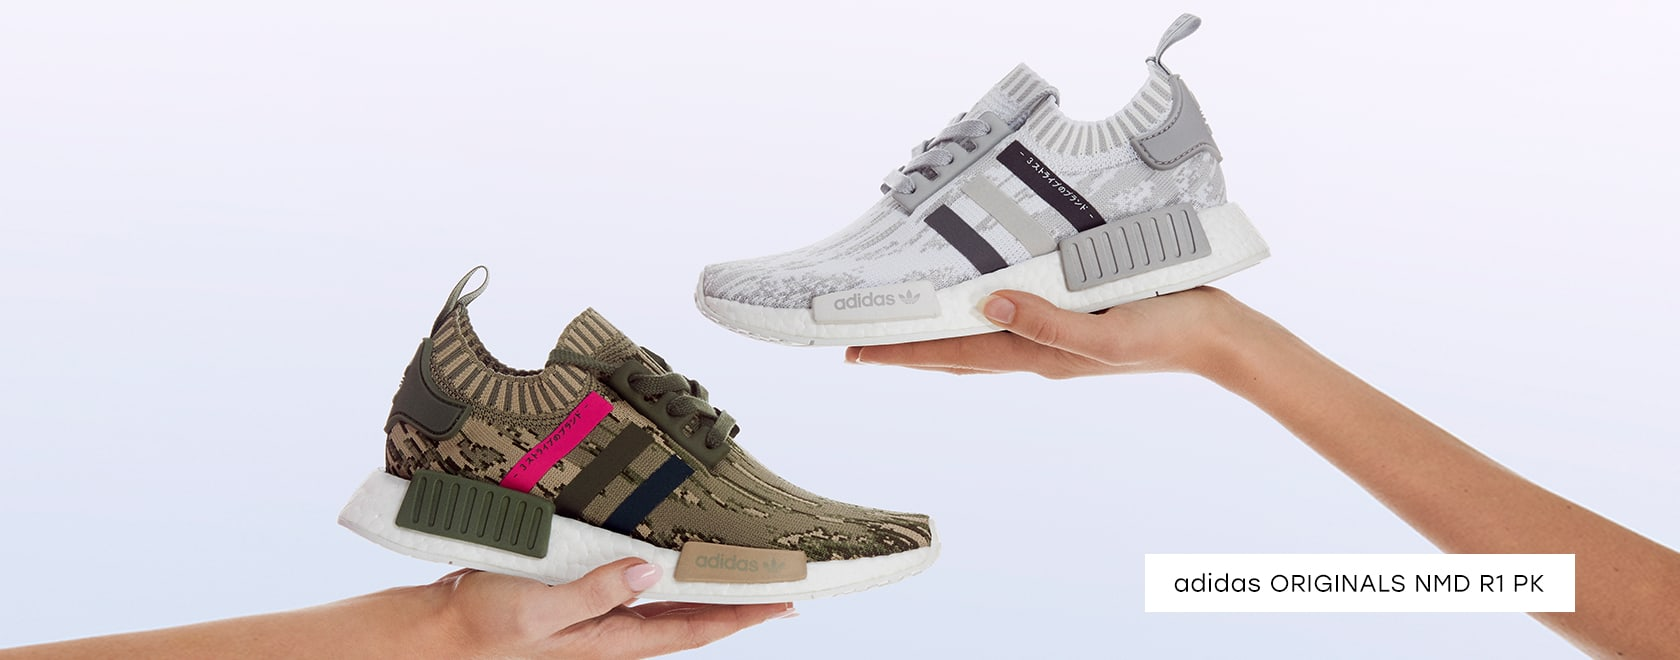 adidas-originals-nmd-r1